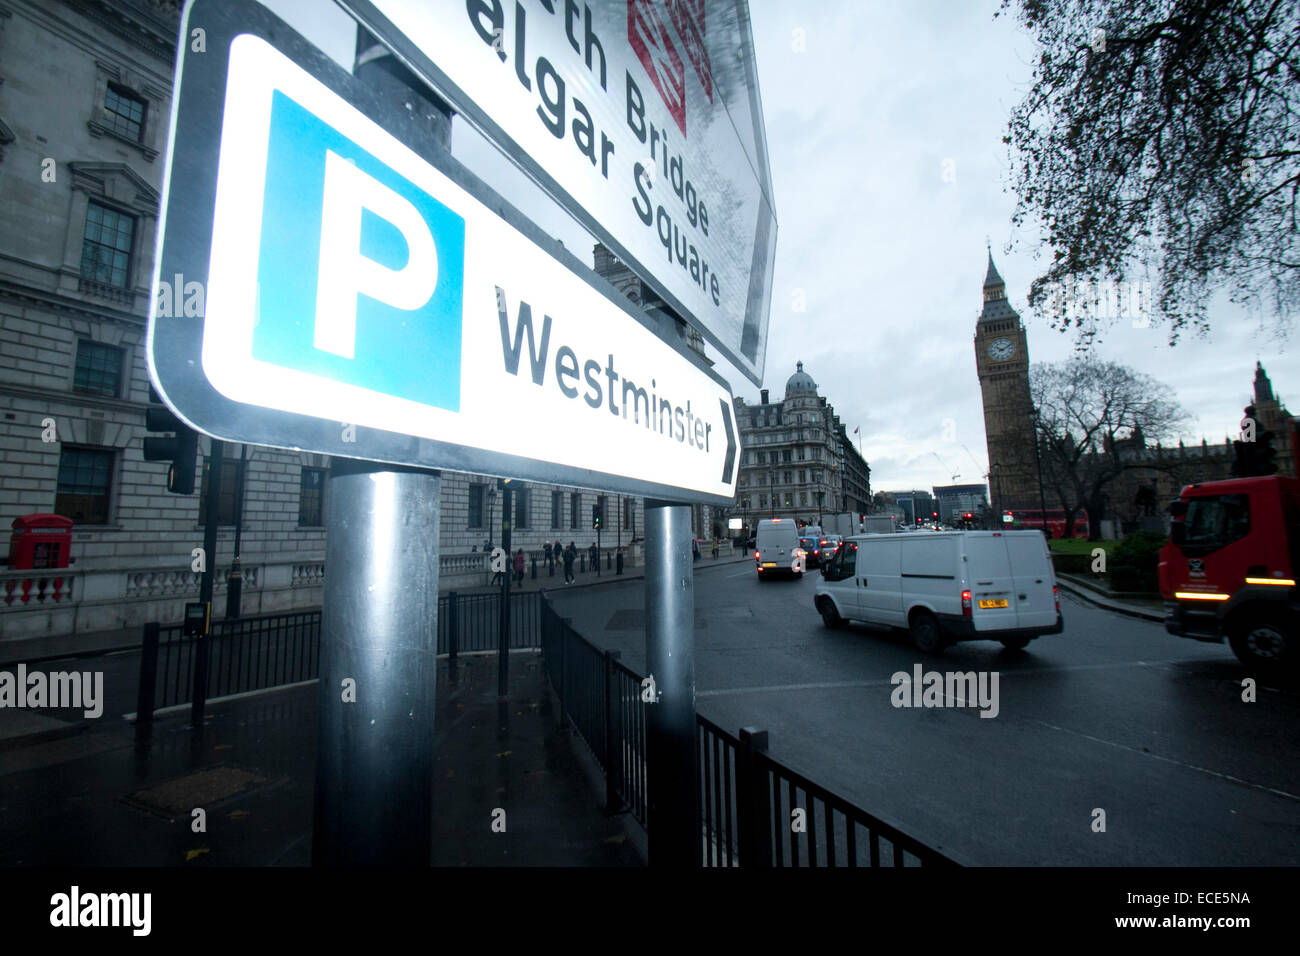 Westminster London,UK. 12th December 2014. Westminster council has been accused of ripping off drivers after announcing - Stock Image